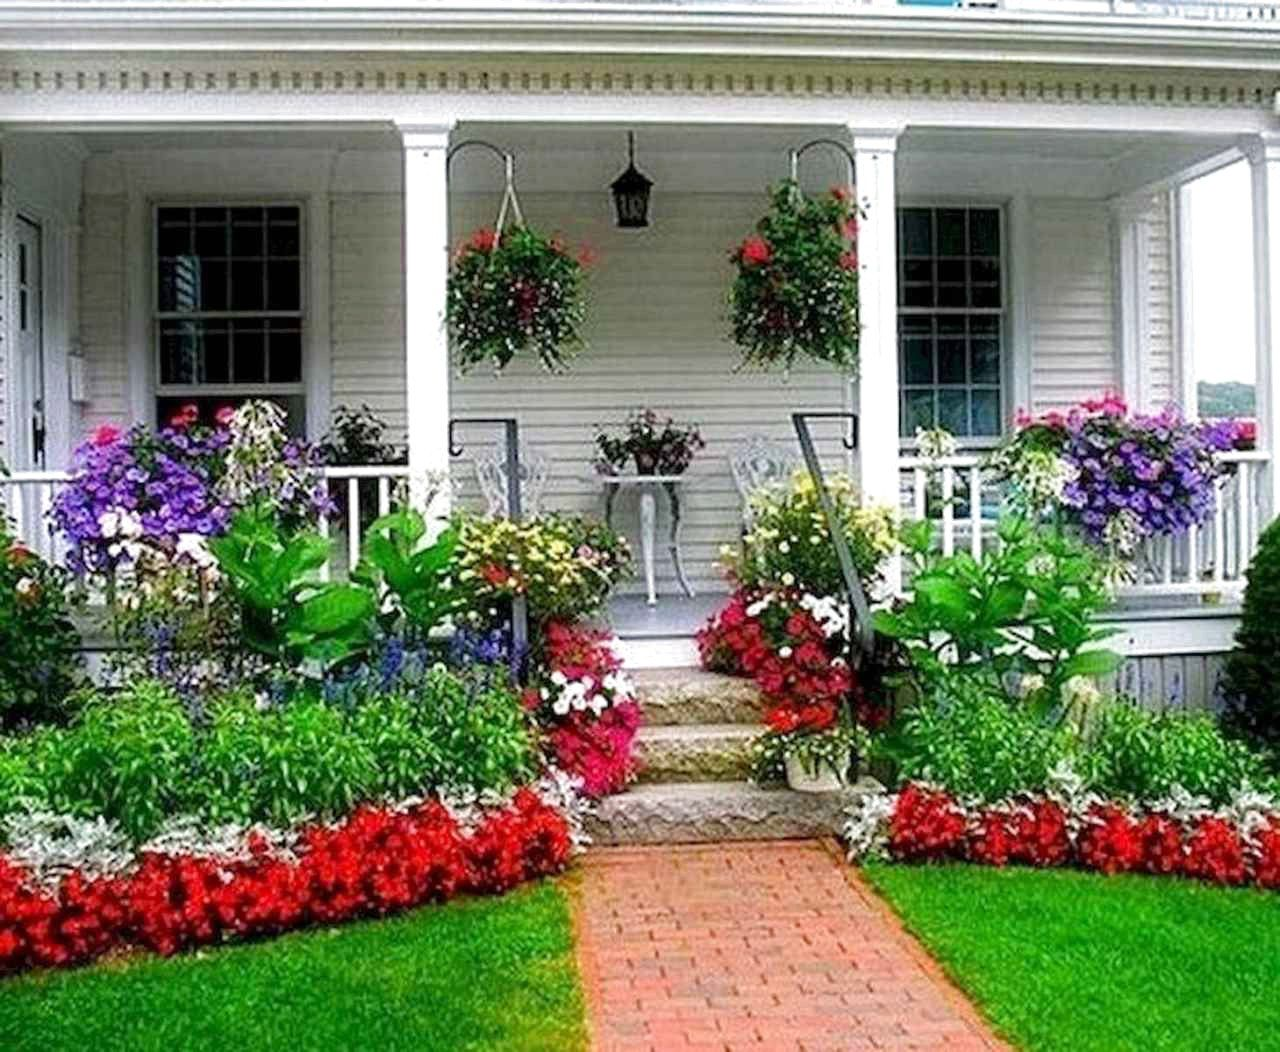 44 Beautiful Front Yard Garden Landscaping Design Ideas And Remodel Home Garden Front Yard Design Porch Landscaping Front Yard Garden